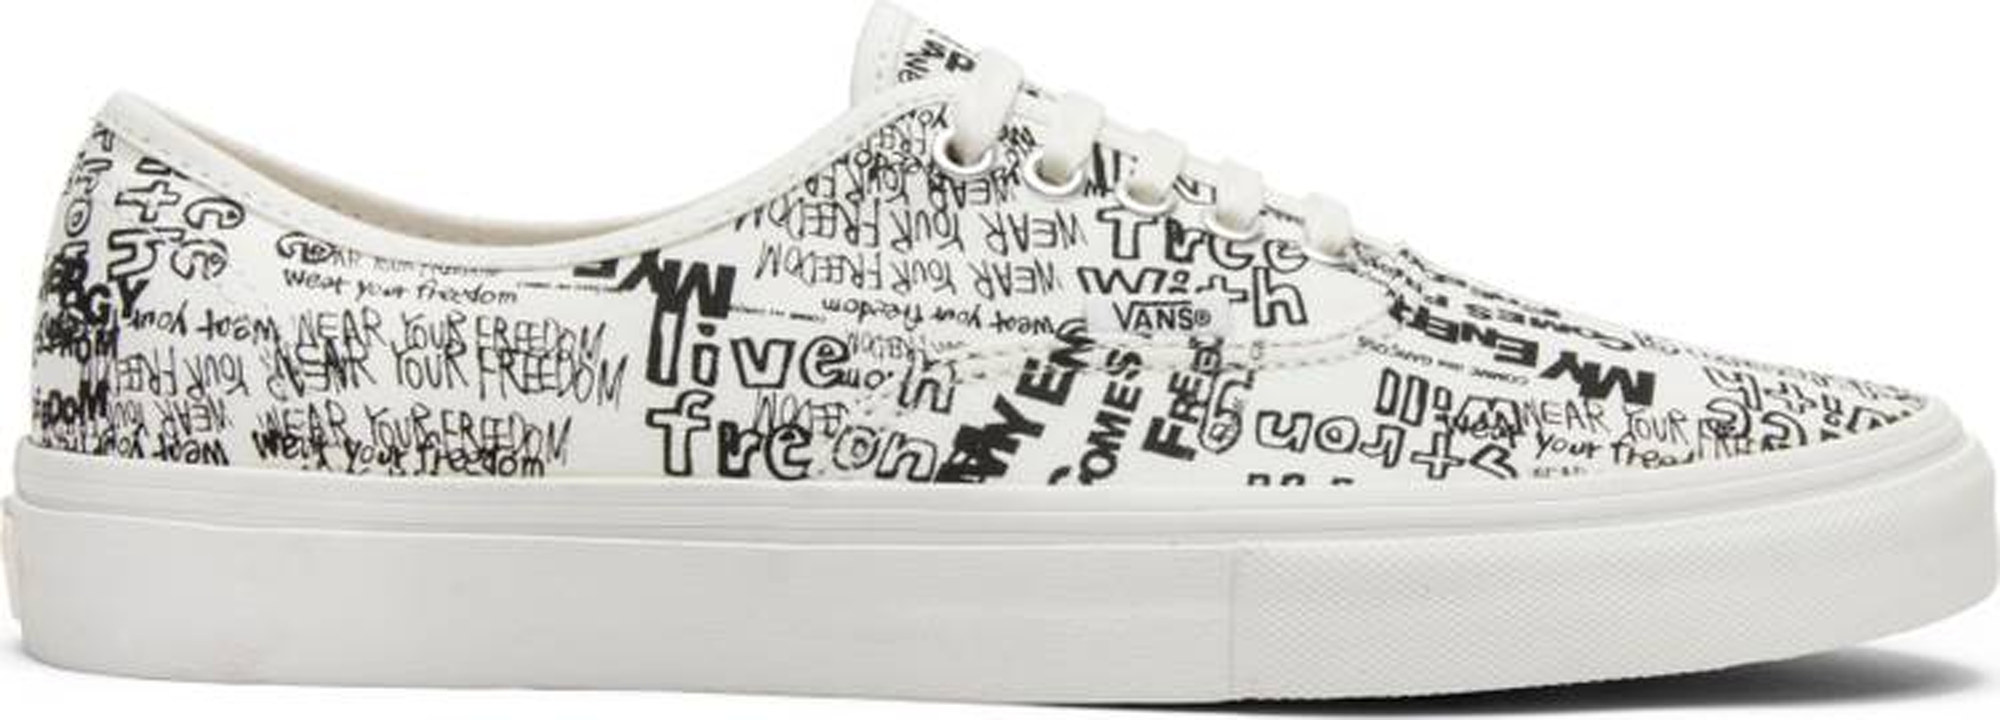 Vans Authentic Comme des Garcons White (Japan) - VN0A33TAKXY